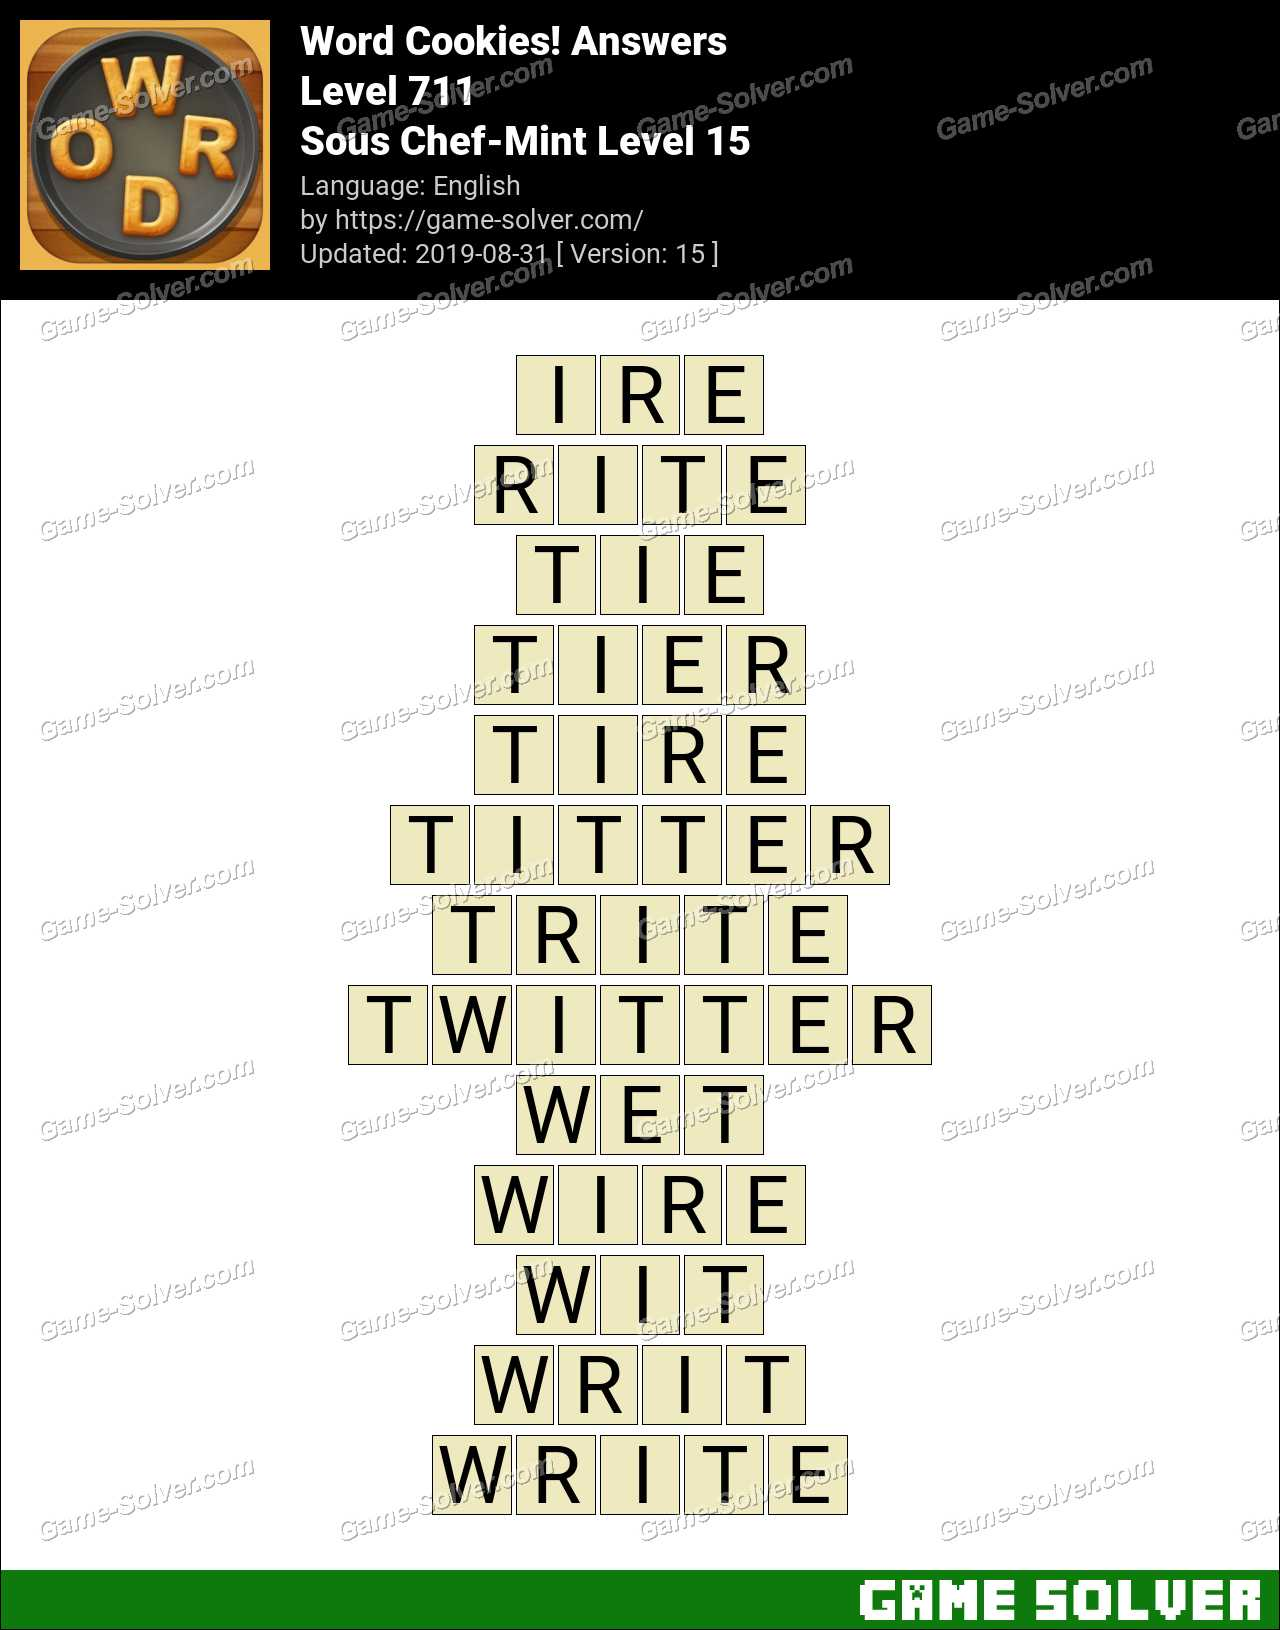 Word Cookies Sous Chef-Mint Level 15 Answers